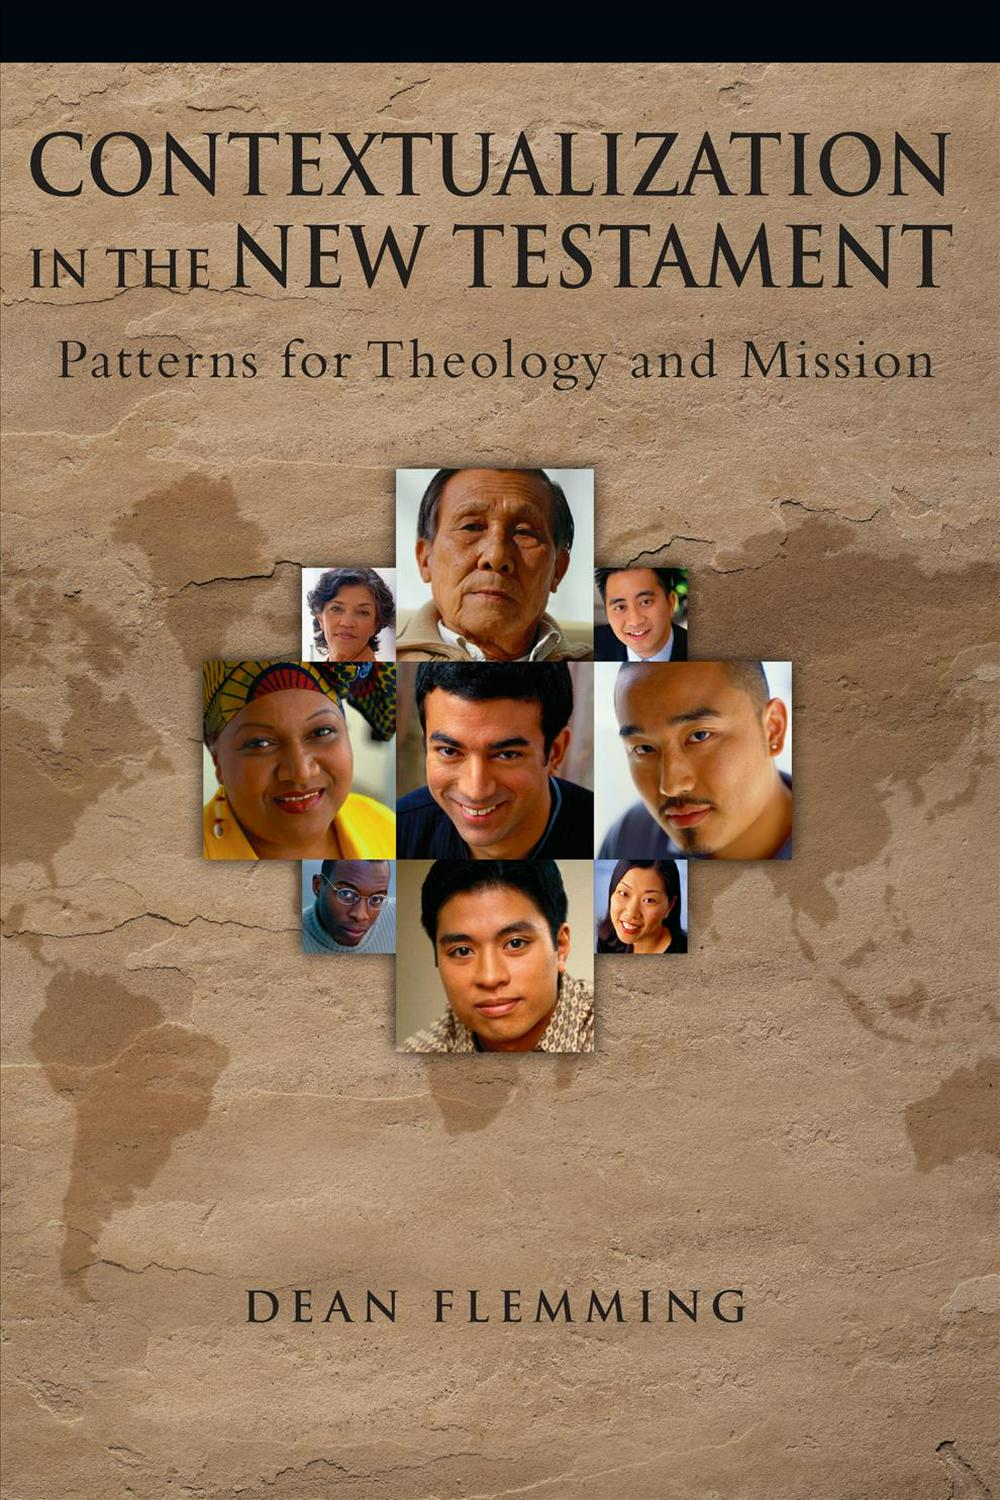 Contextualization in the New Testament: Patterns for Theology and Mission by Dean E Flemming, ISBN: 9780830828319